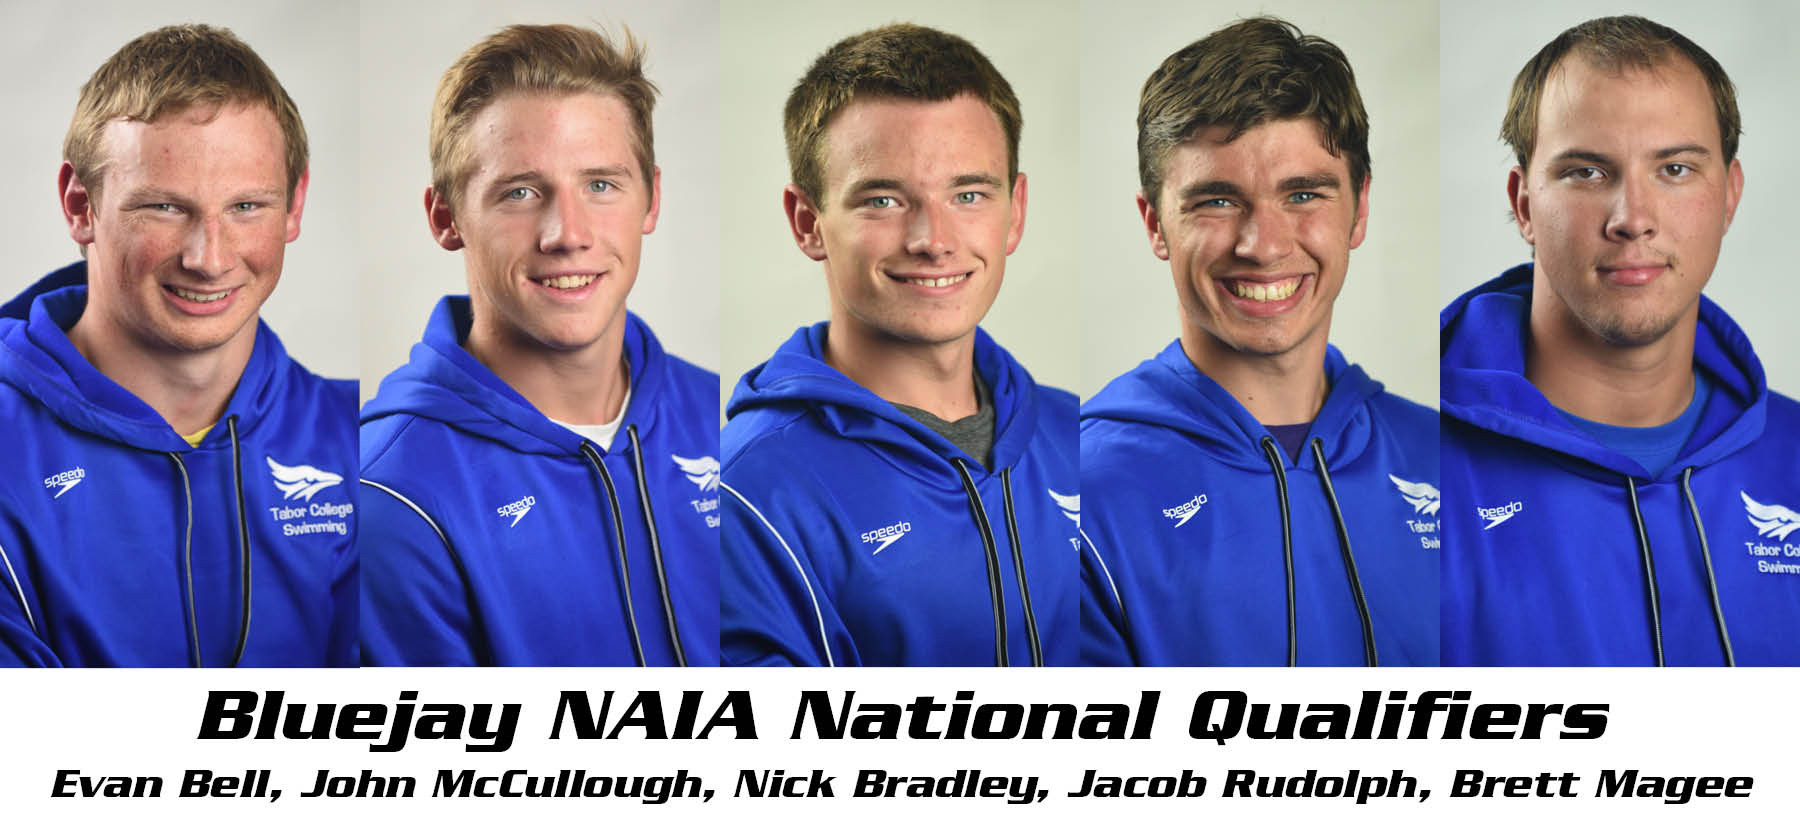 Bluejay Swimmer National Qualifiers